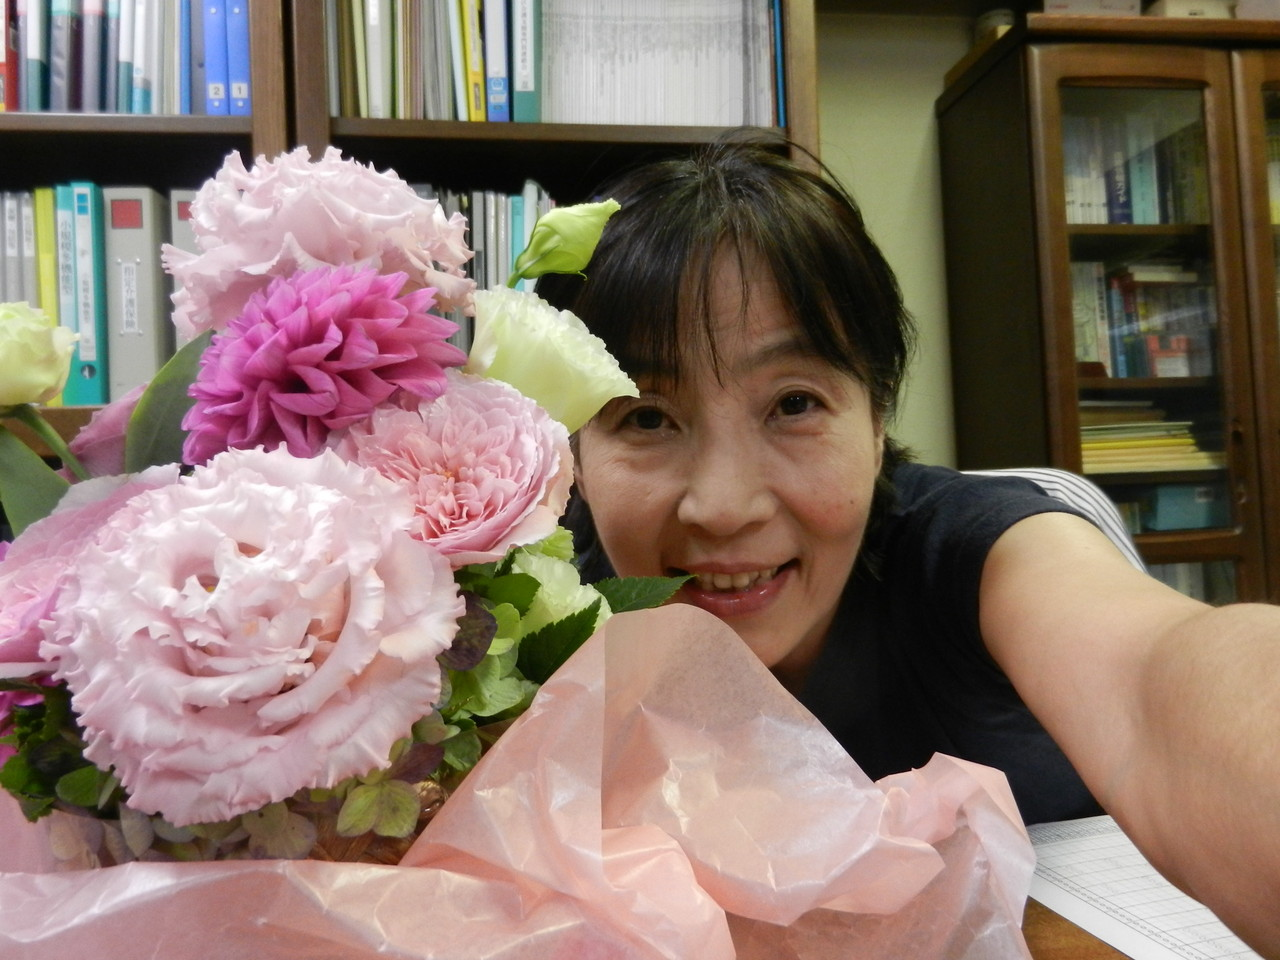 http://www.access-care.co.jp/wp-content/uploads/accesscare/imgs/a/2/a290670f.jpg